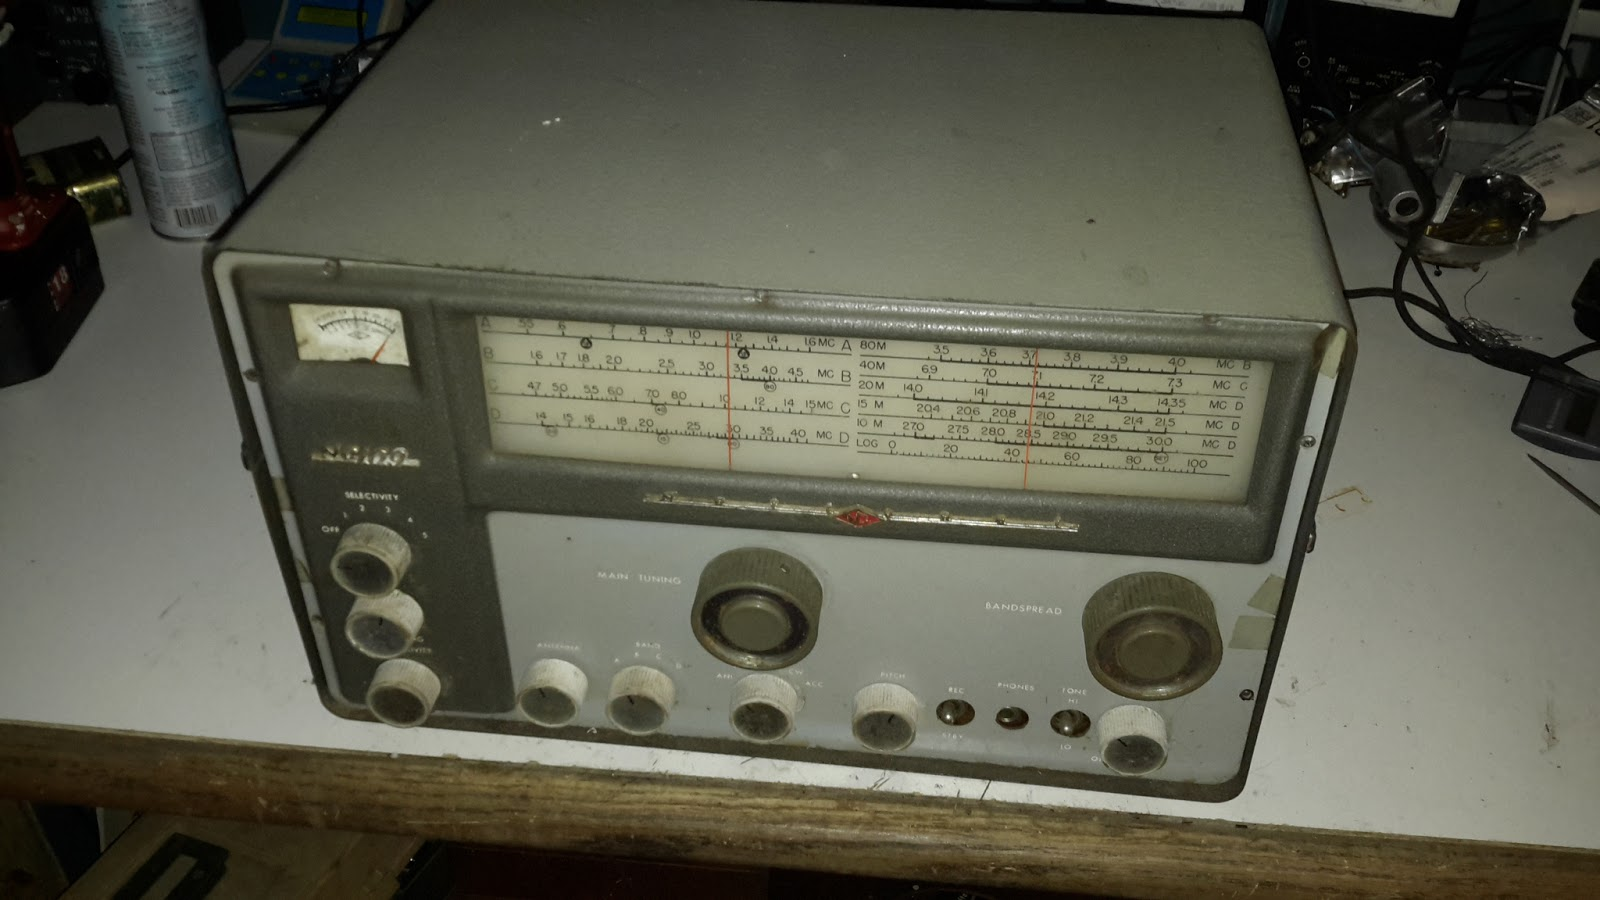 Steves Eclectic Radio Blog 2016 Amplifier Described Here Uses Two Small Amplifiers Like Lm380 Mounted I Need Another Old Sw Receiver Hole In My Head But Felt Sorry For This Nc 109 When It Came Up At An Auction Attended Last